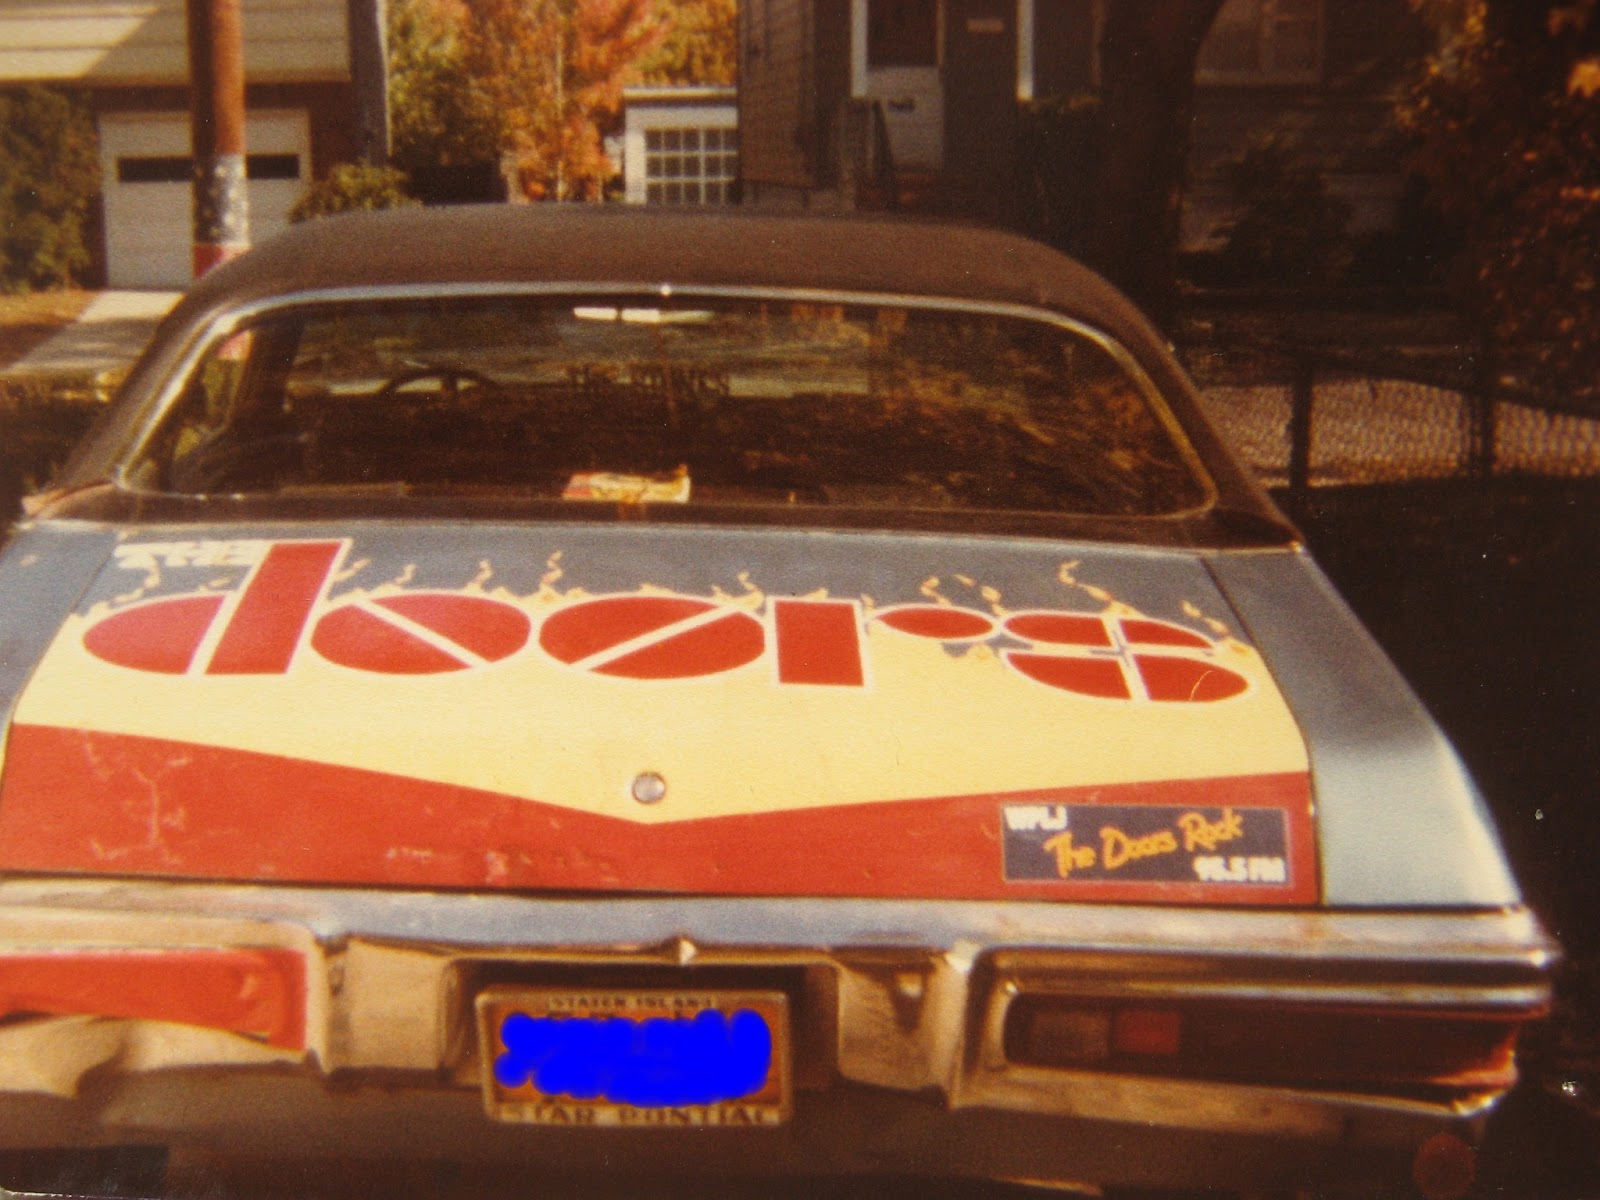 The Doors mobile! Staten Island, New York 1981